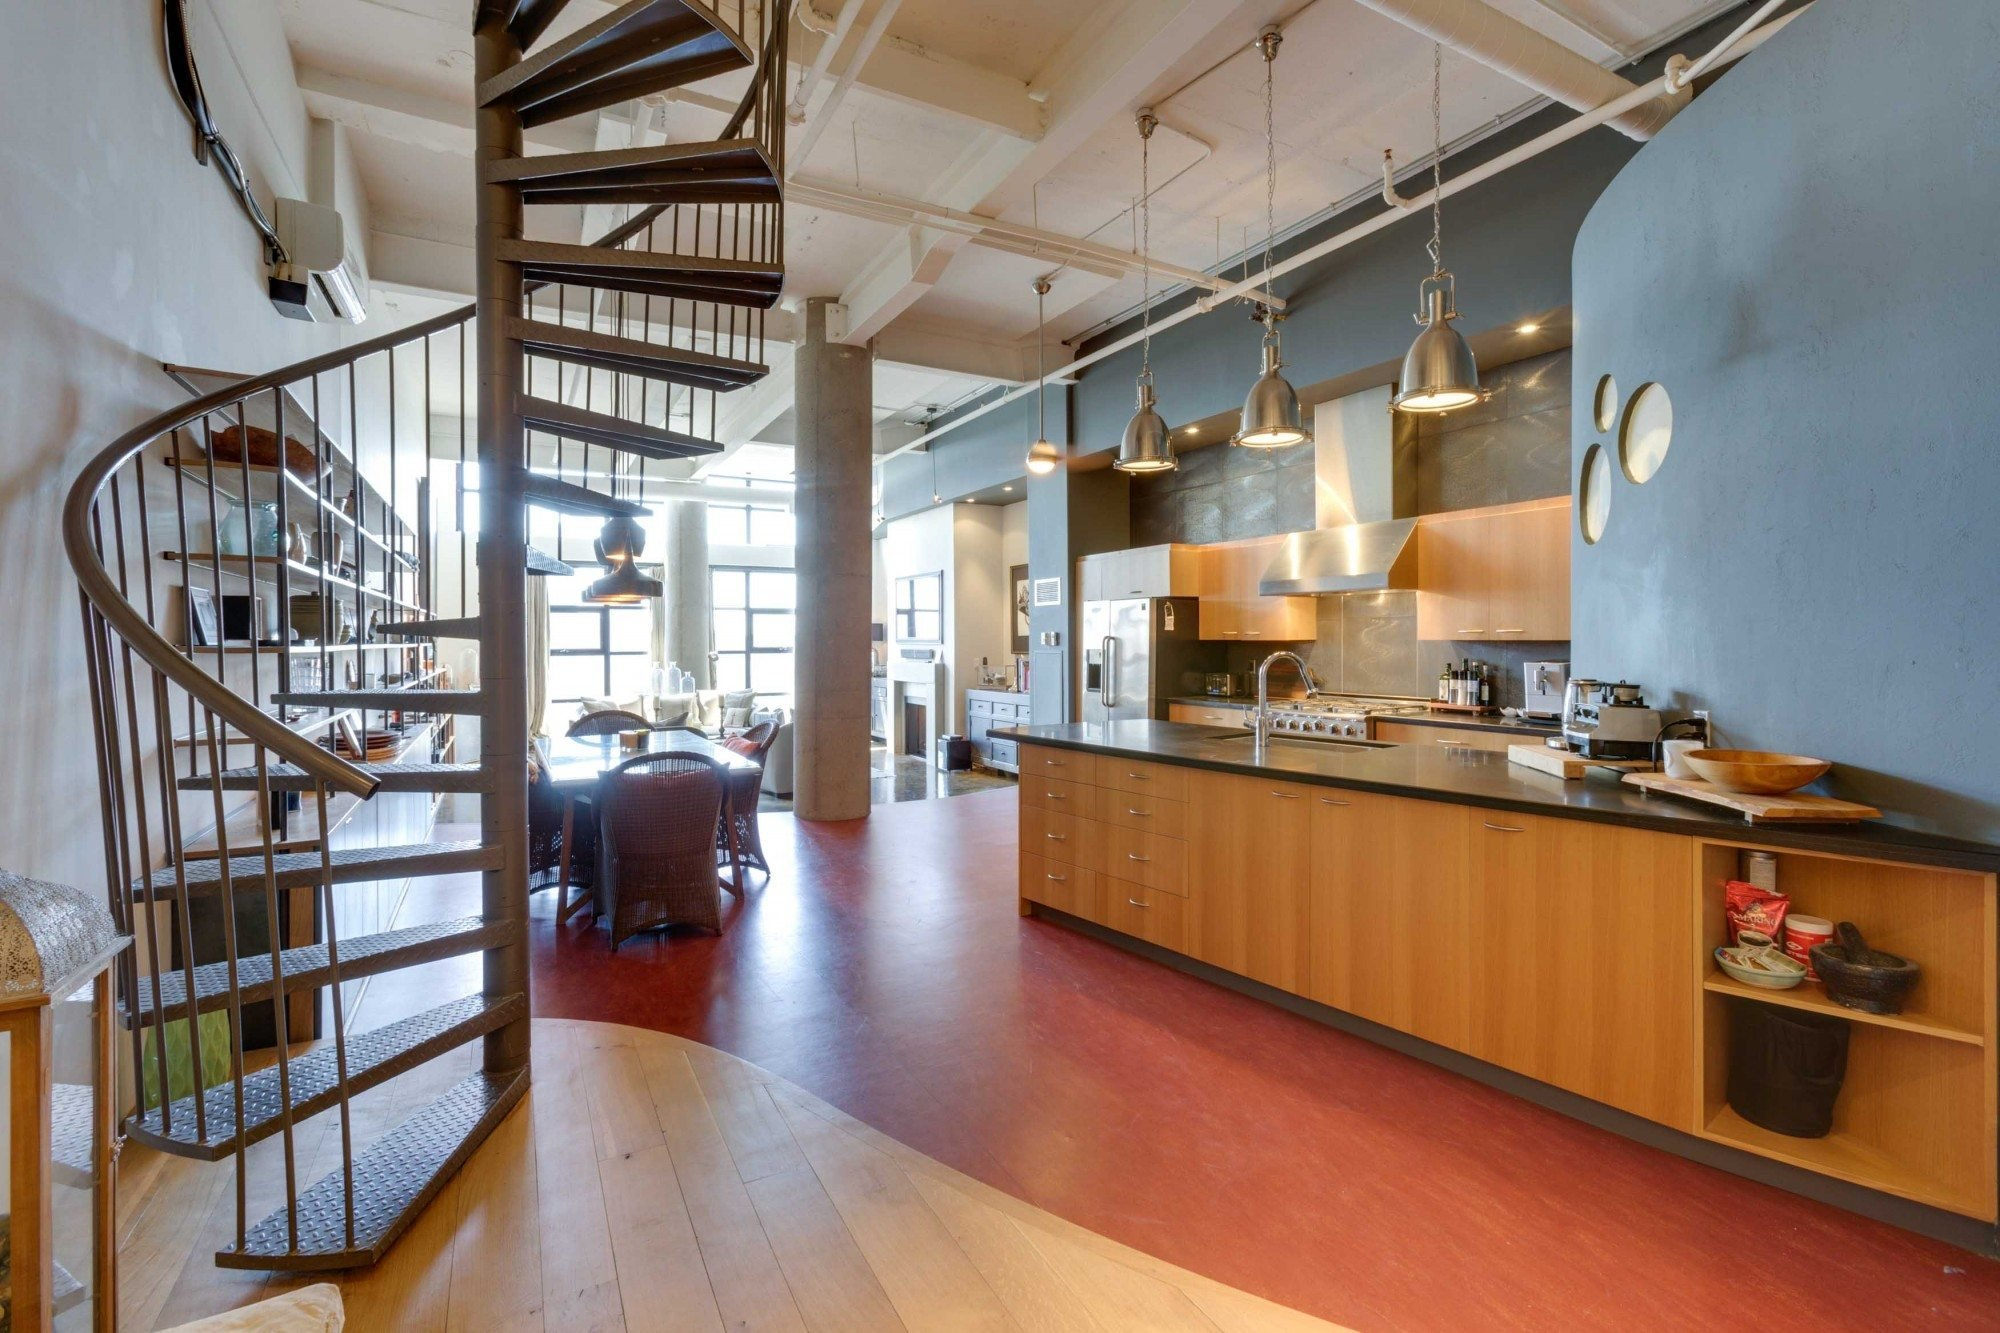 Best 1 2 Million For A One Bedroom Loft In A Converted Cbc With Pictures